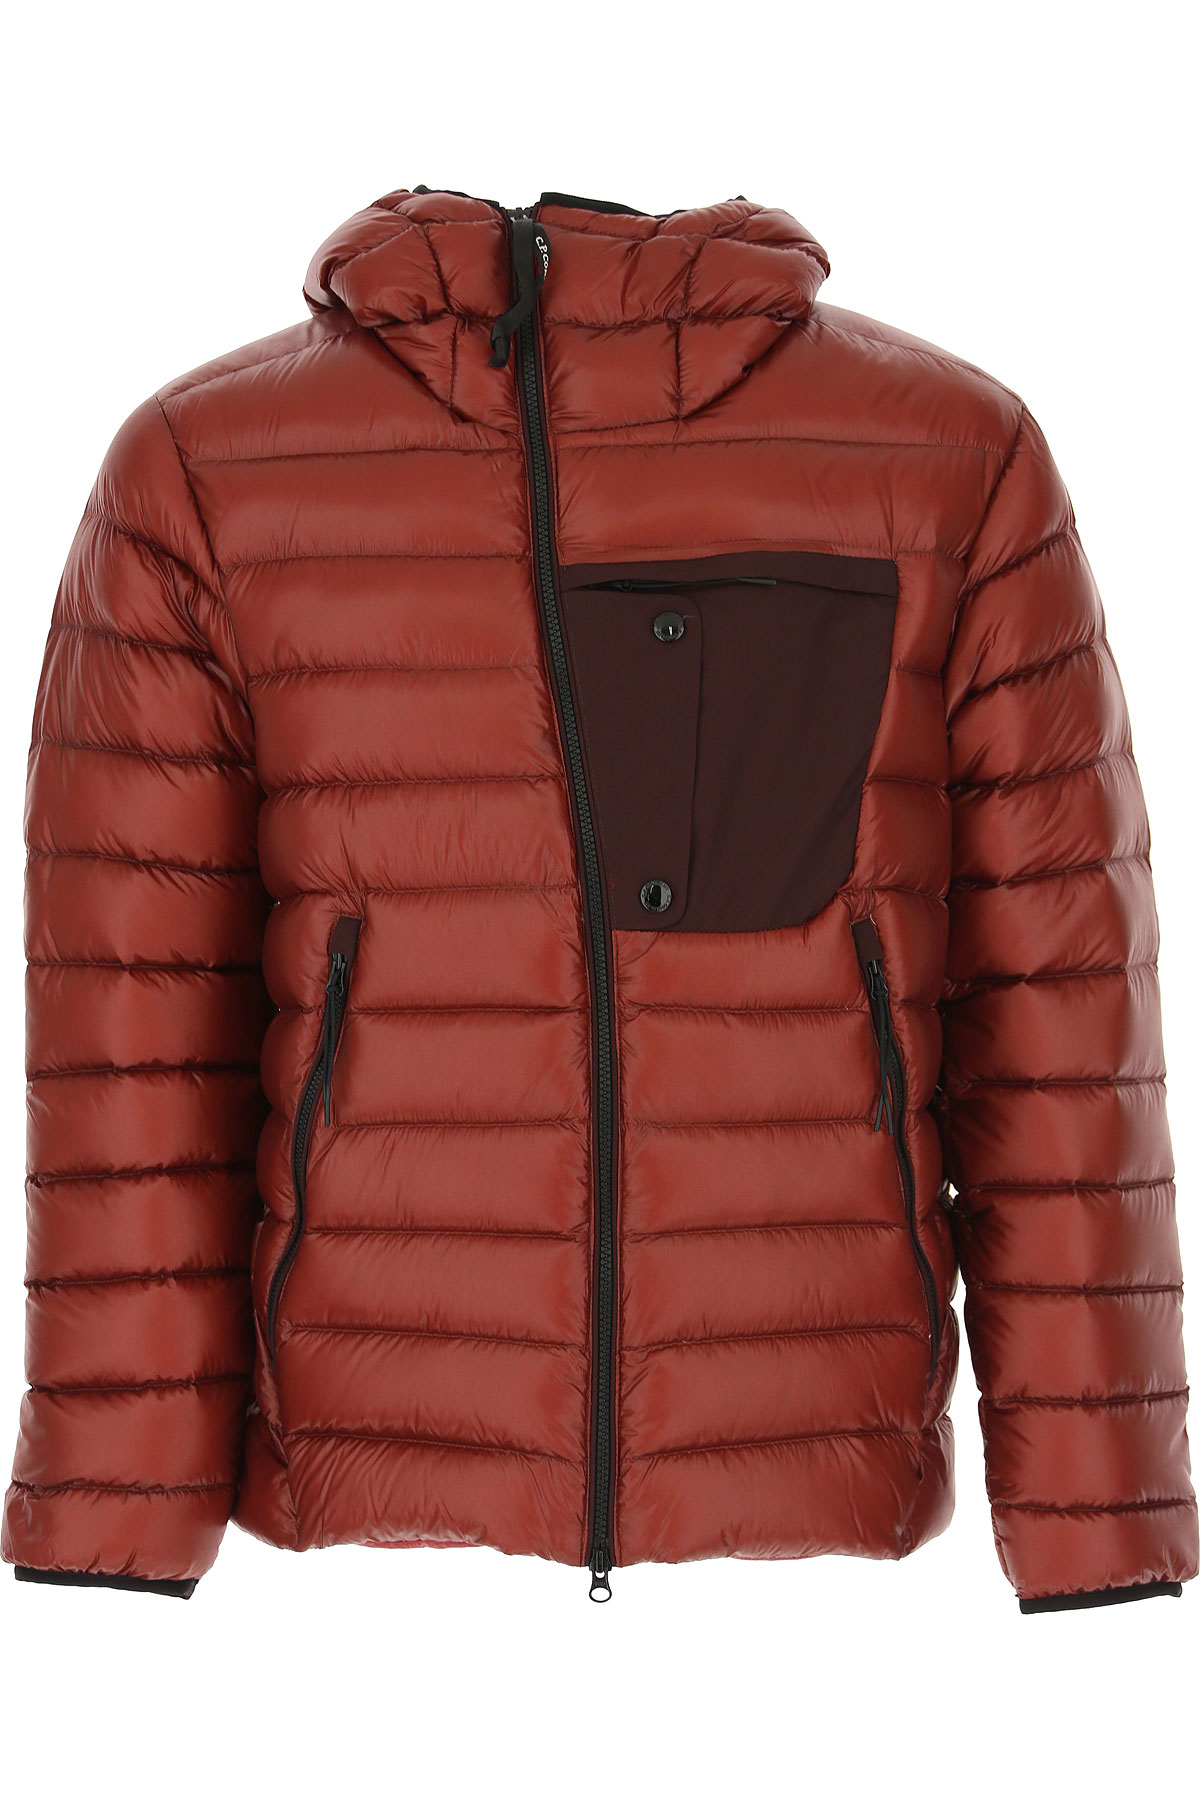 C.P. Company Down Jacket for Men, Puffer Ski Jacket On Sale, Bordeaux Red, polyamide, 2019, L XL